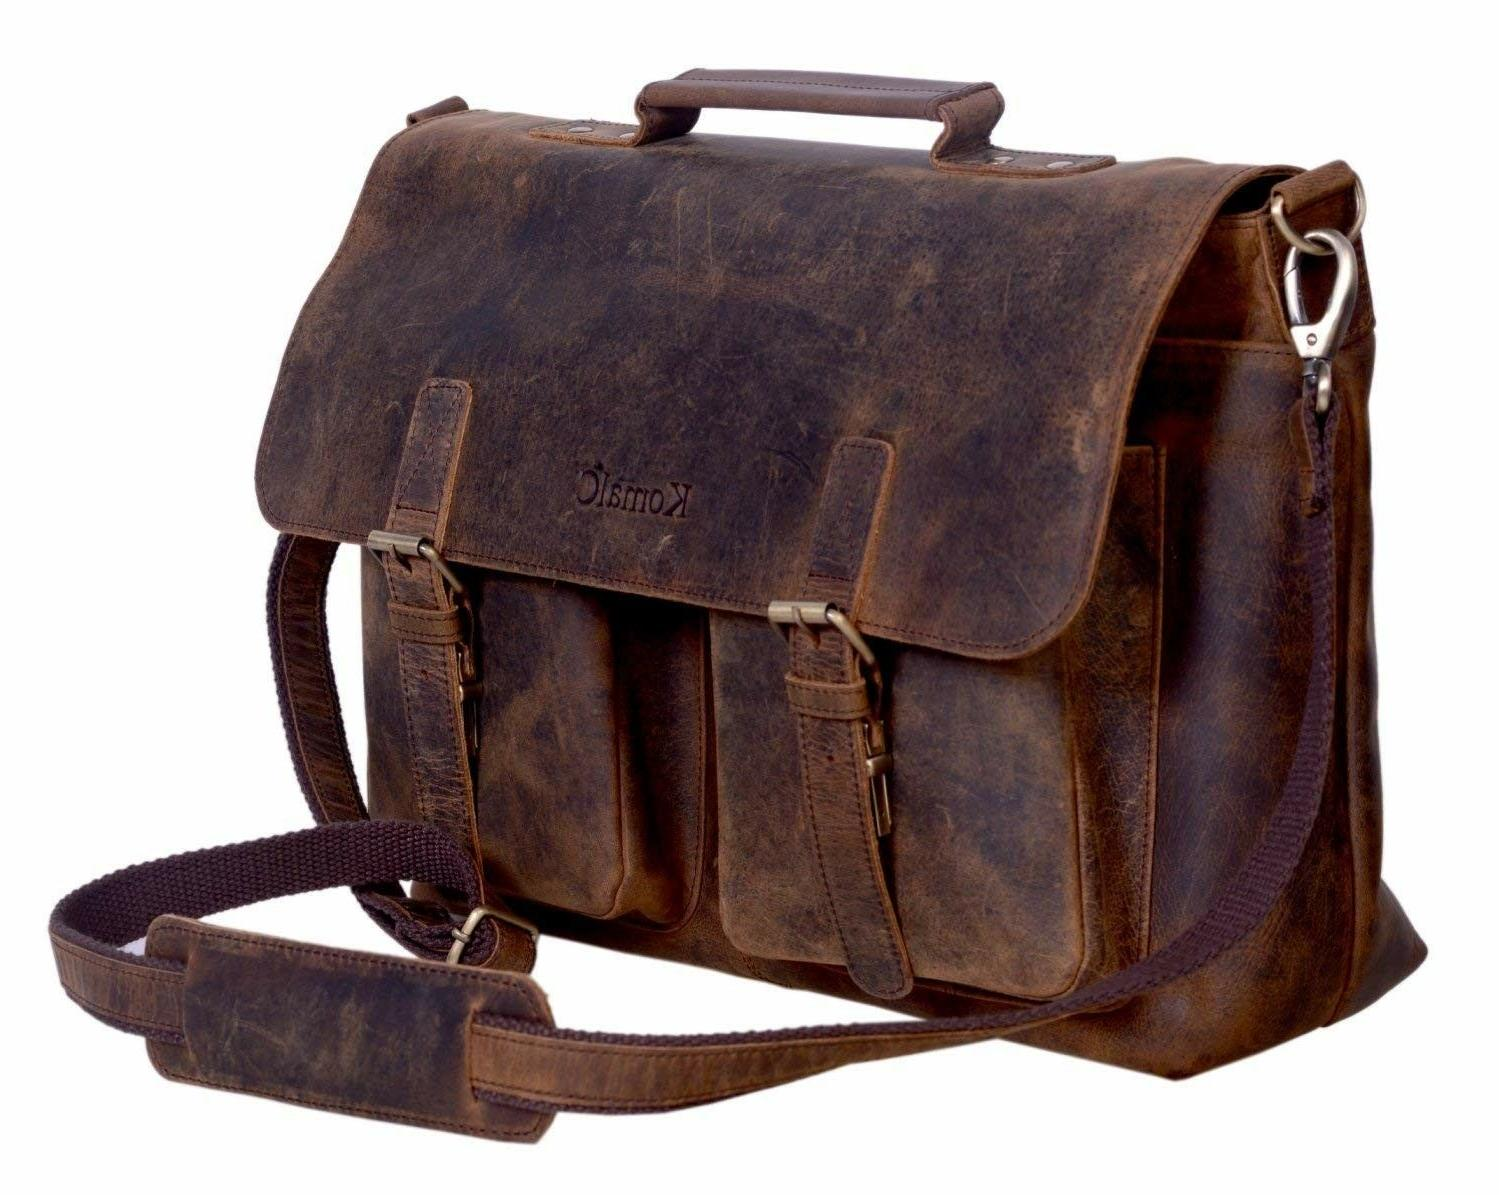 KomalC 15 Inch Retro Buffalo Hunter Leather Laptop Messenger Bag Office Briefcase College Bag Fits Upto 15.6 Inch Laptop